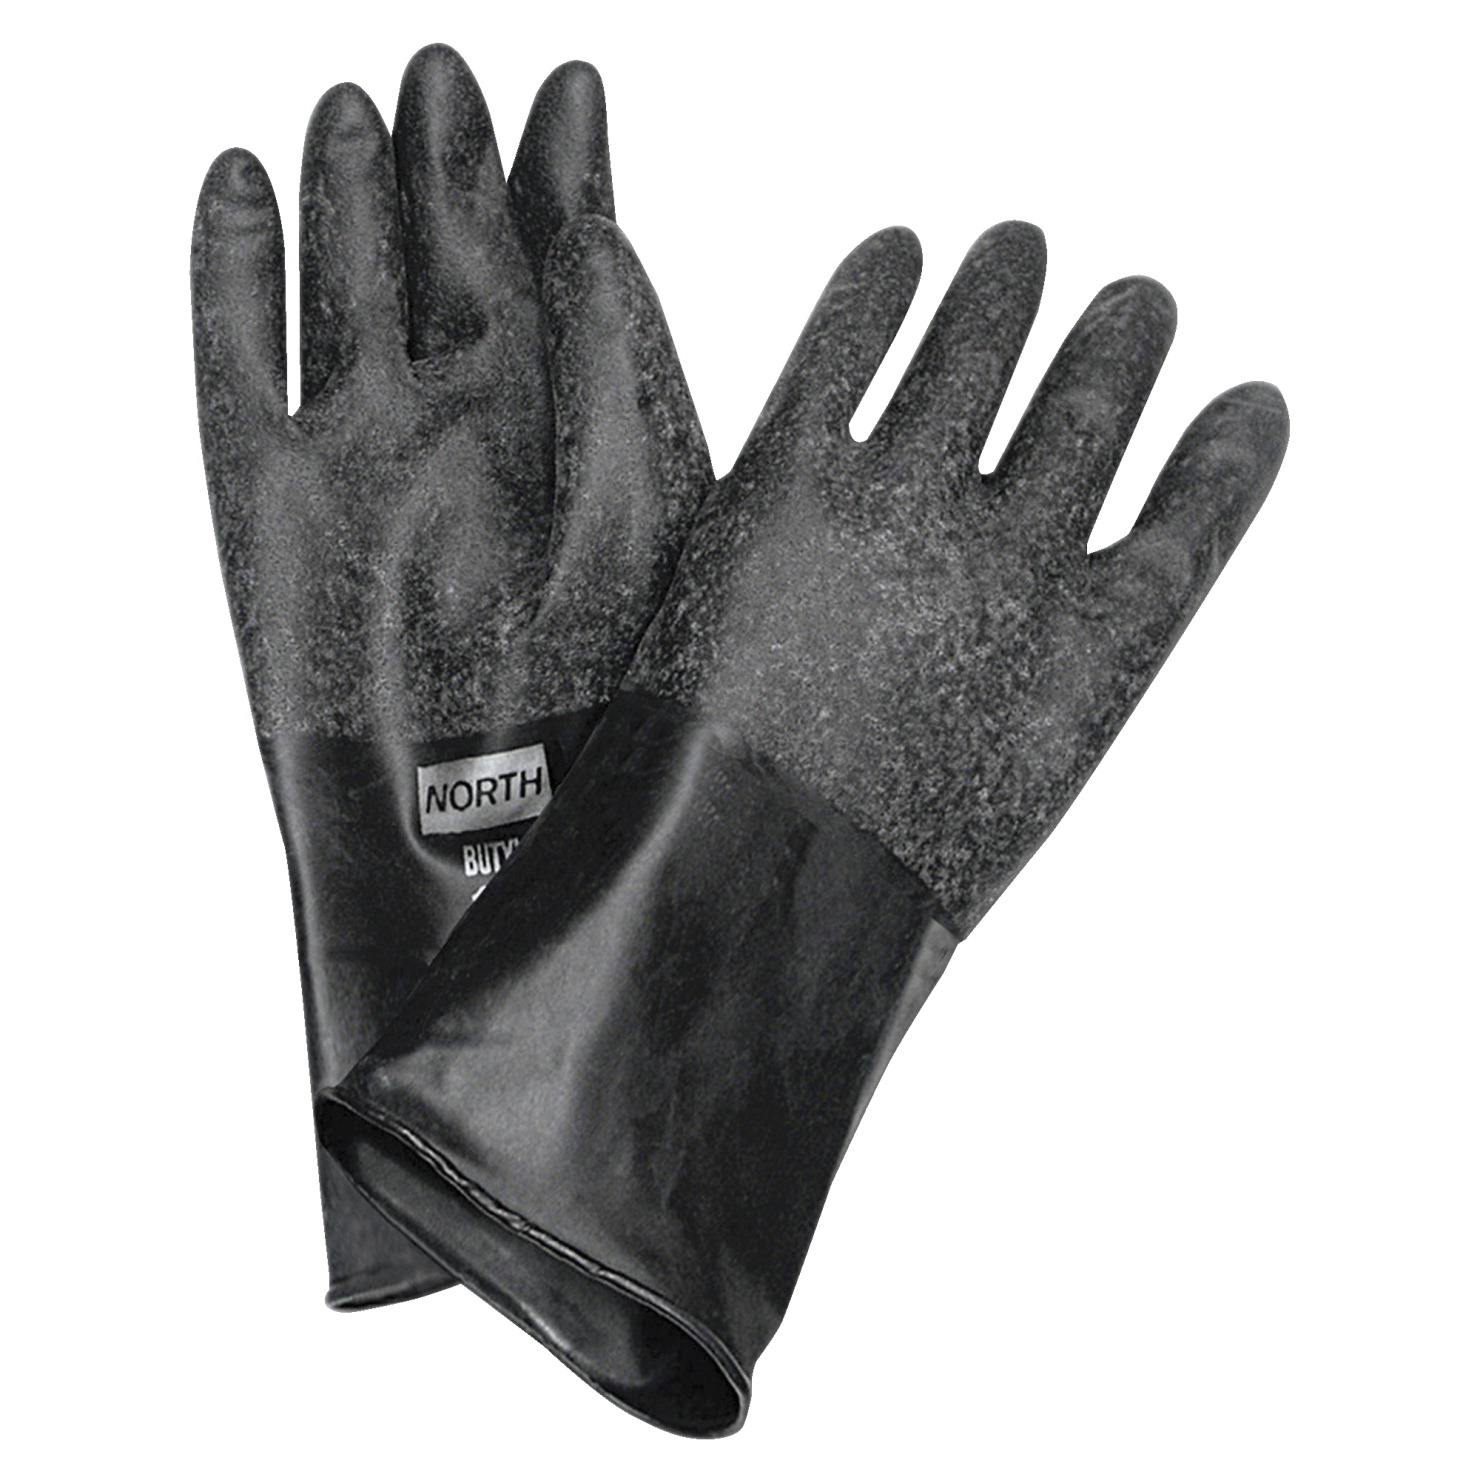 Northern Safety Unsupported Butyl Chemical Protection Gloves, 14 in, Size 8, 17 mil, 1 pair, Black